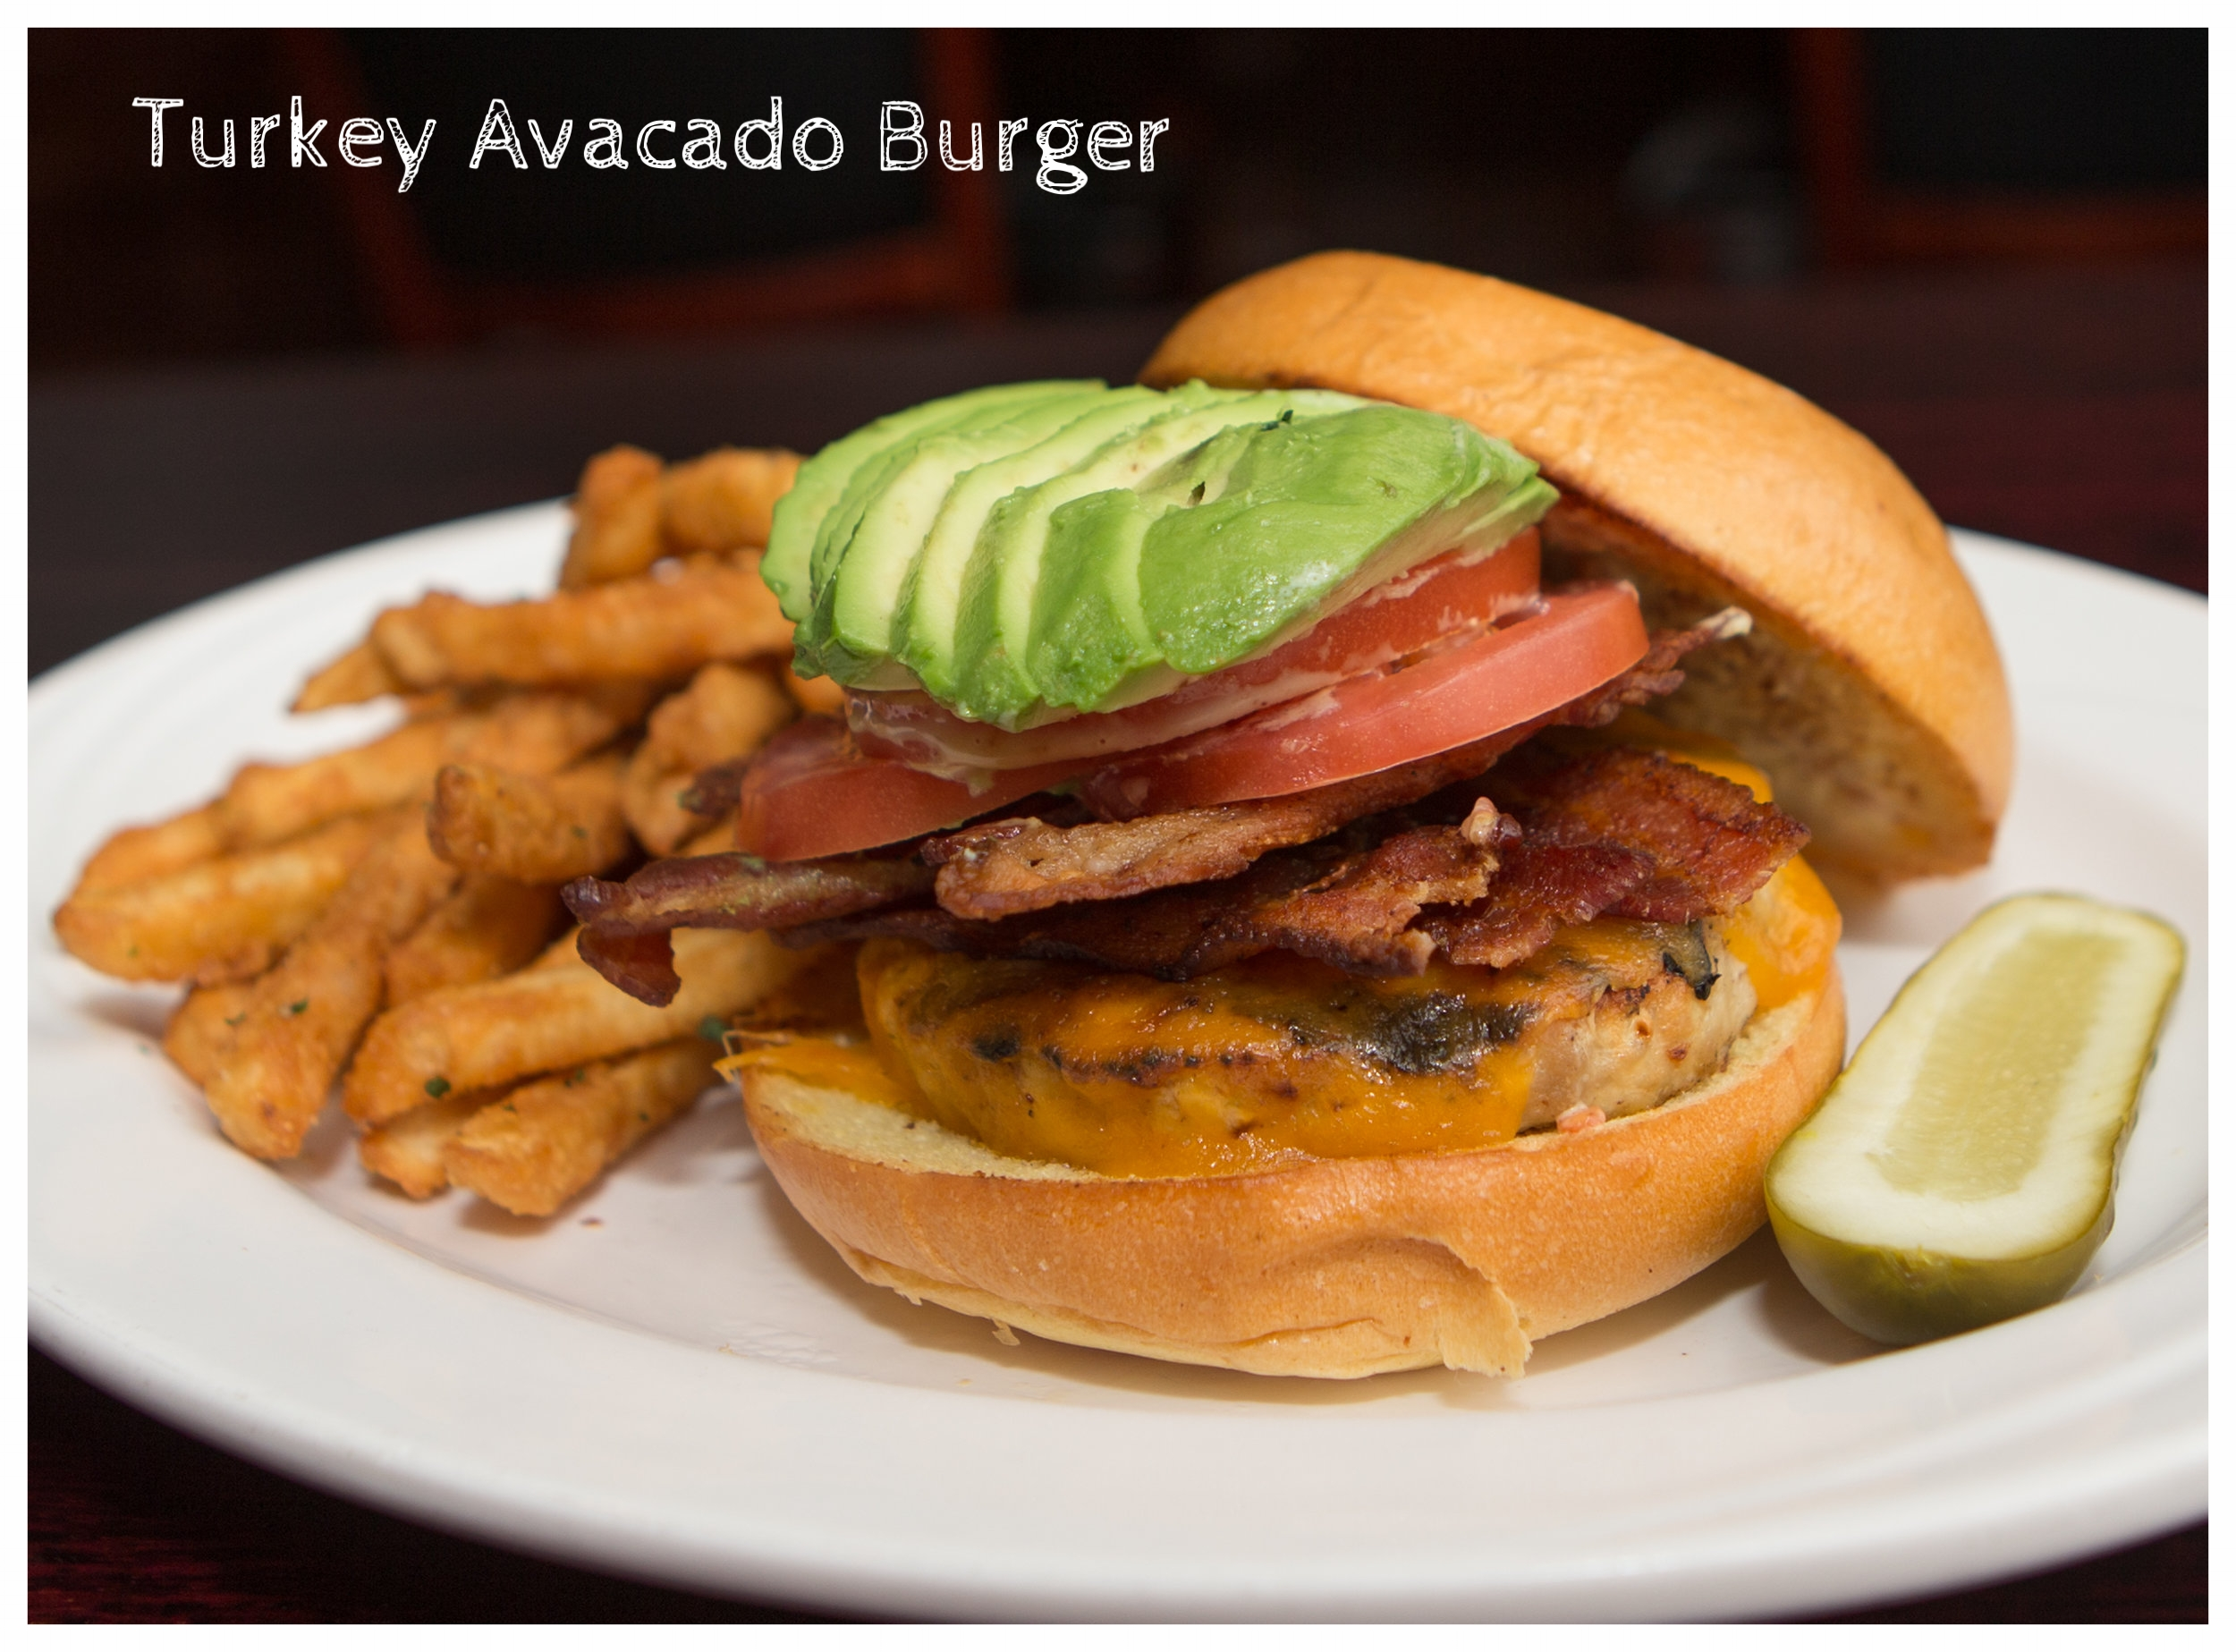 Turkey Avacado Burger (side).jpg